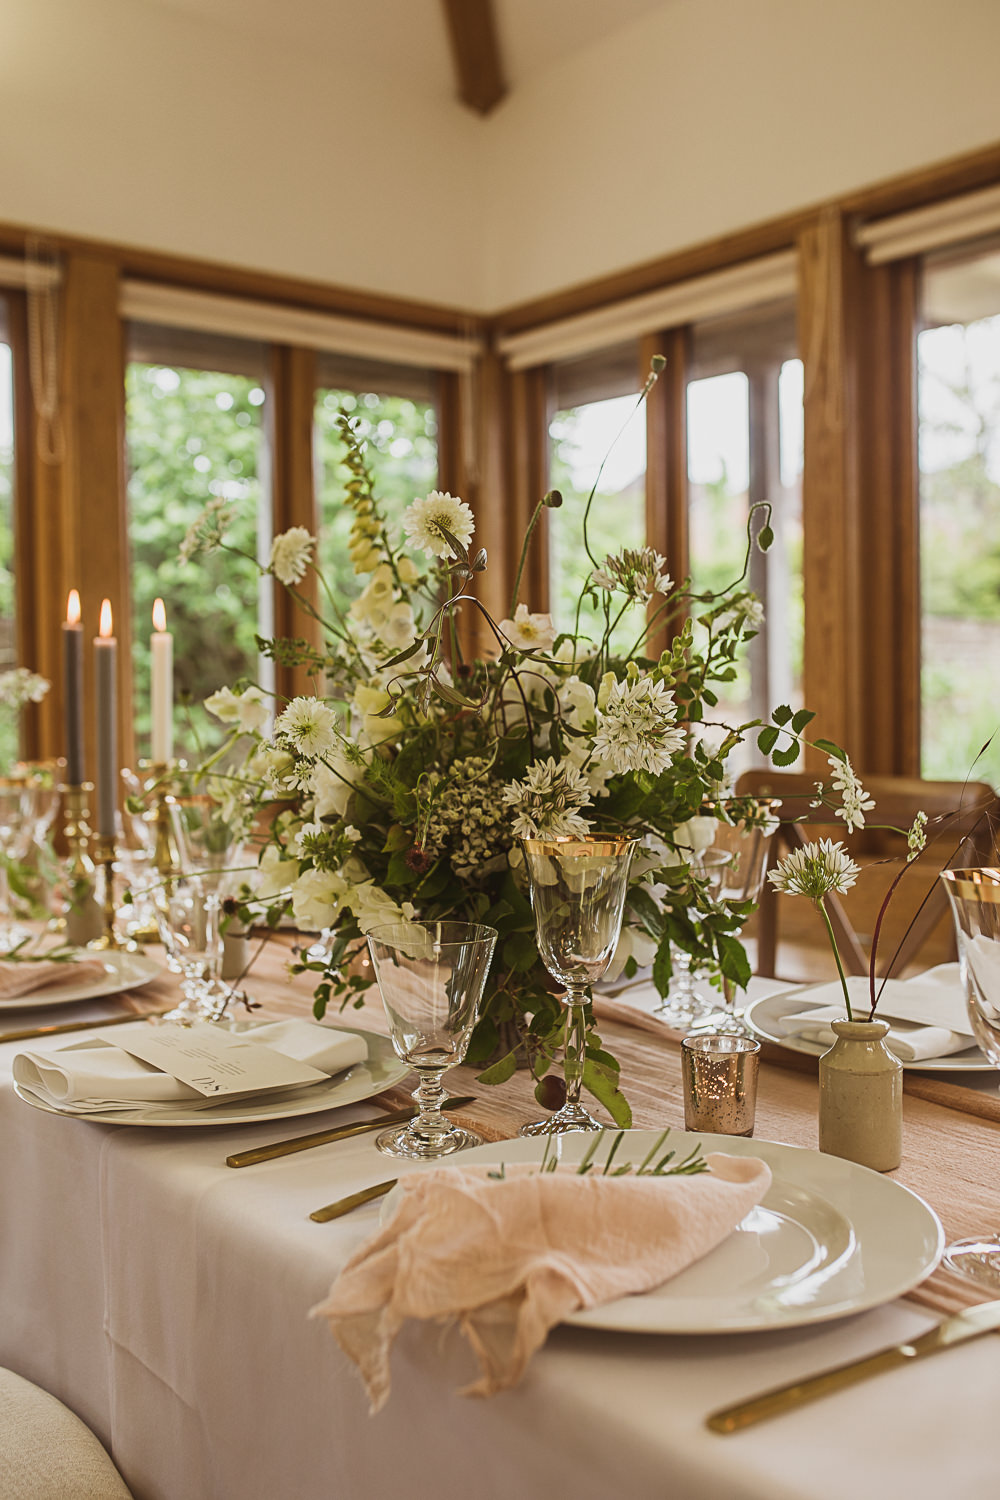 Table Tablescape Decor Candles Flowers Greenery Blush Pink Centrepiece Small Wedding Ideas The Springles